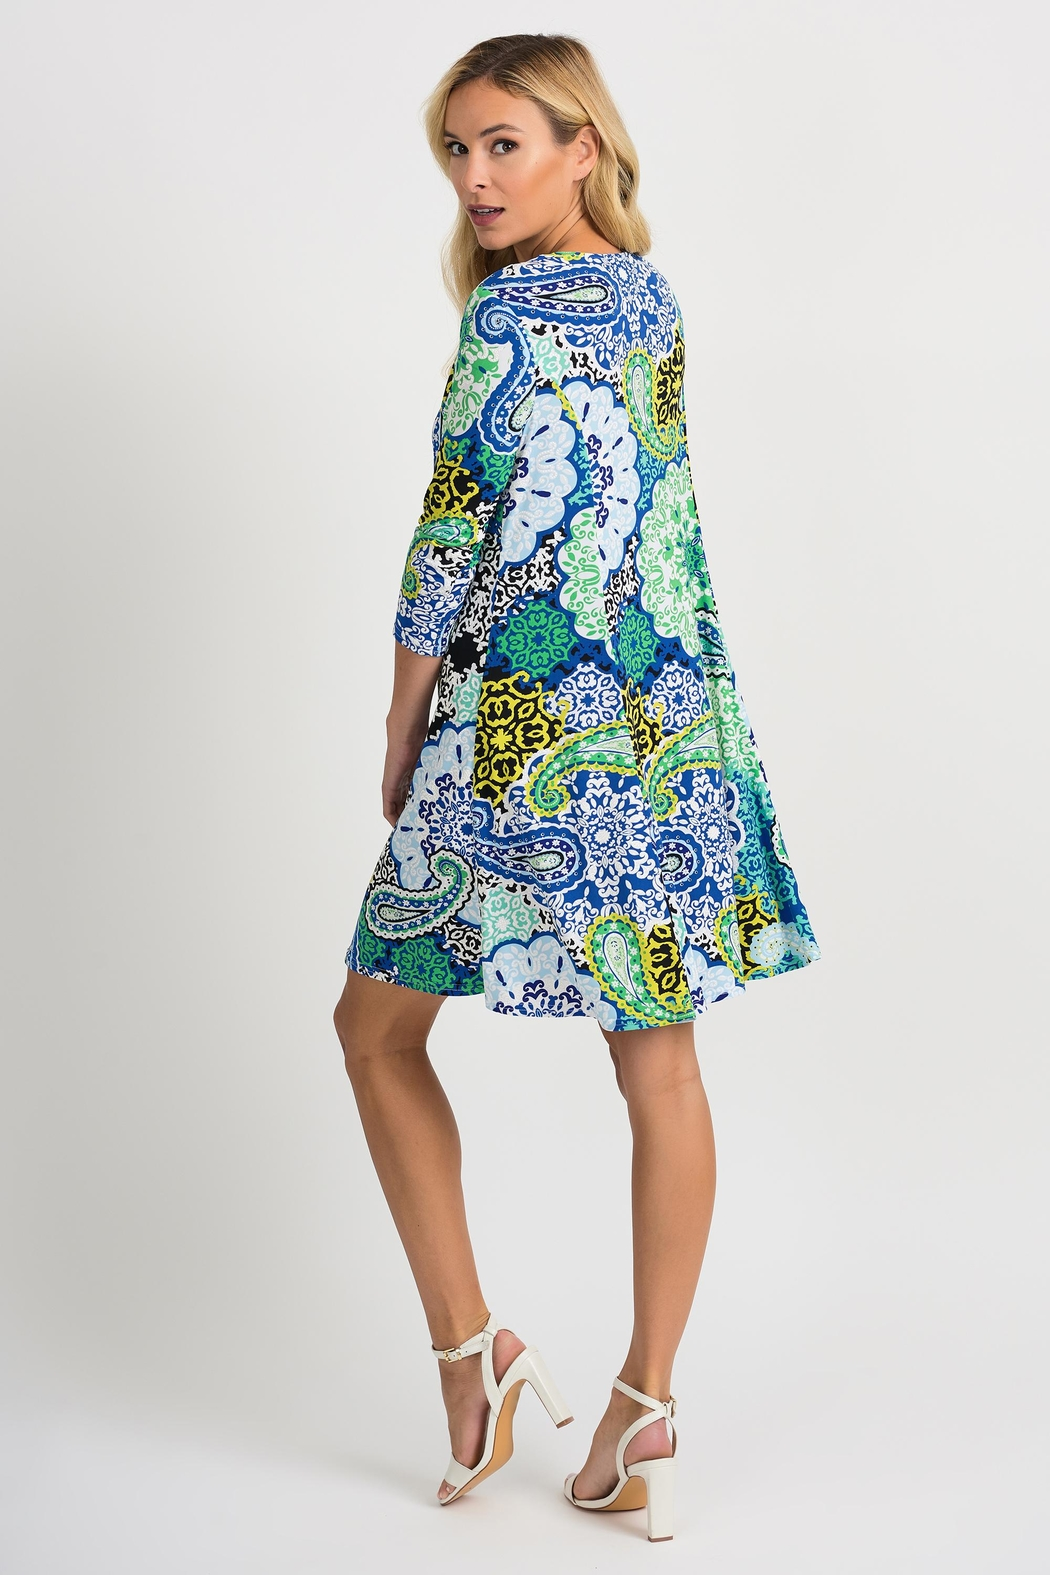 Joseph Ribkoff Crystal Printed Dress - Side Cropped Image